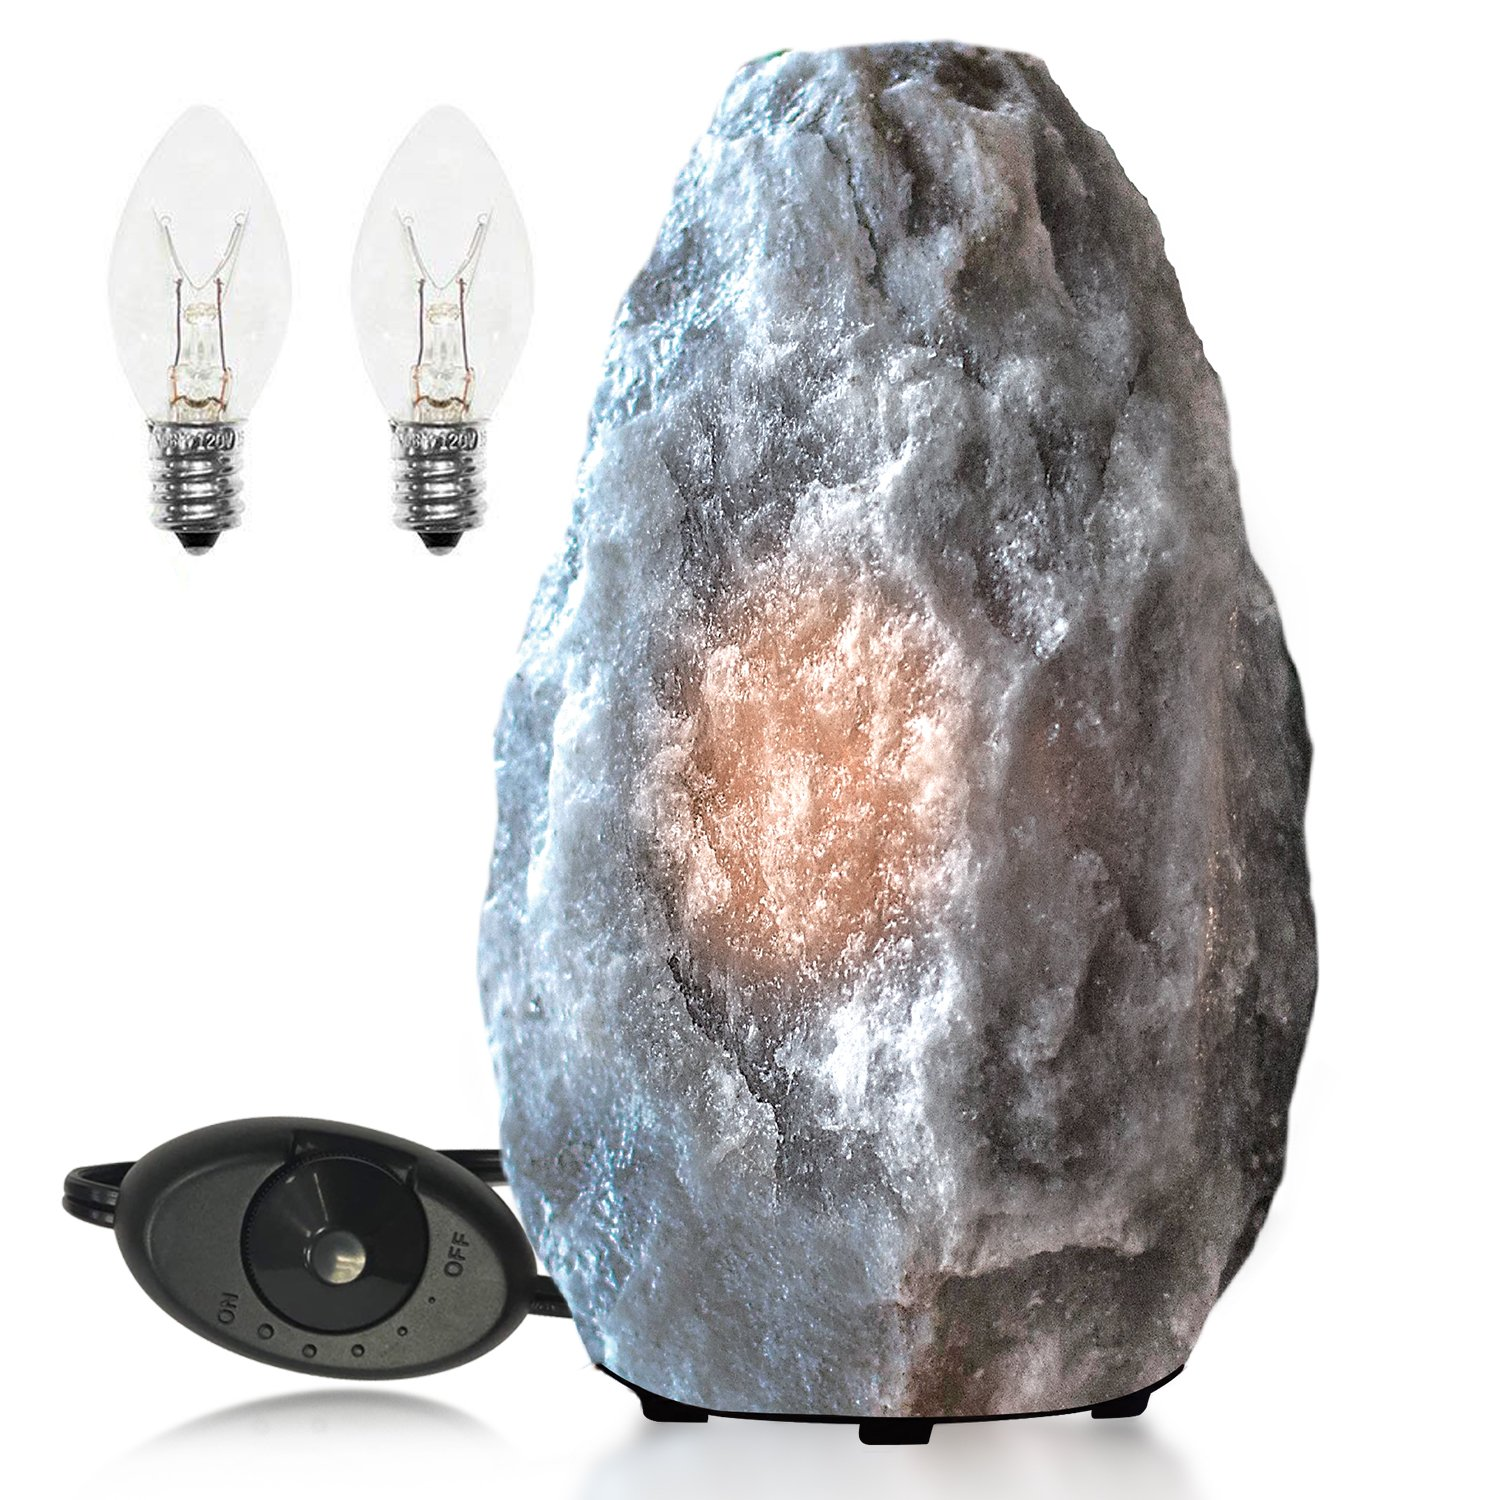 Why does the rock lamp get wet?